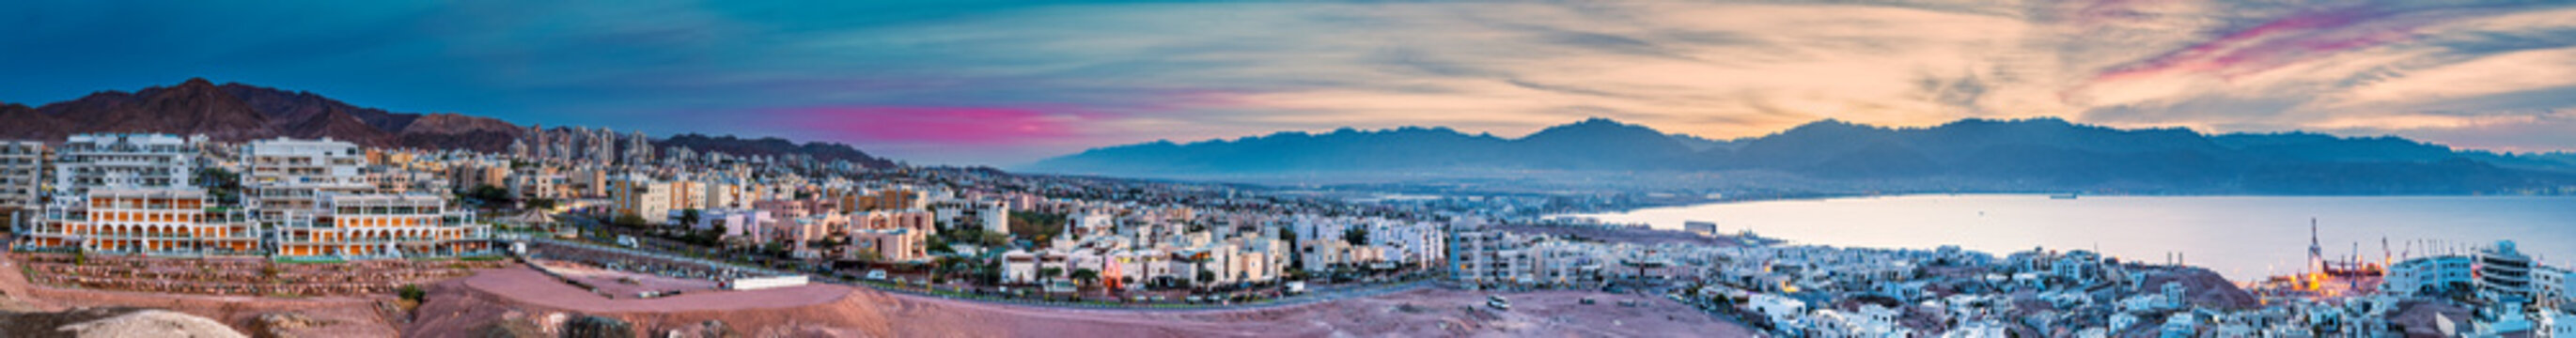 Aerial scenic panorama of the Red Sea, mountains and buildings of Eilat city - famous tourist resort and recreational place in Israel